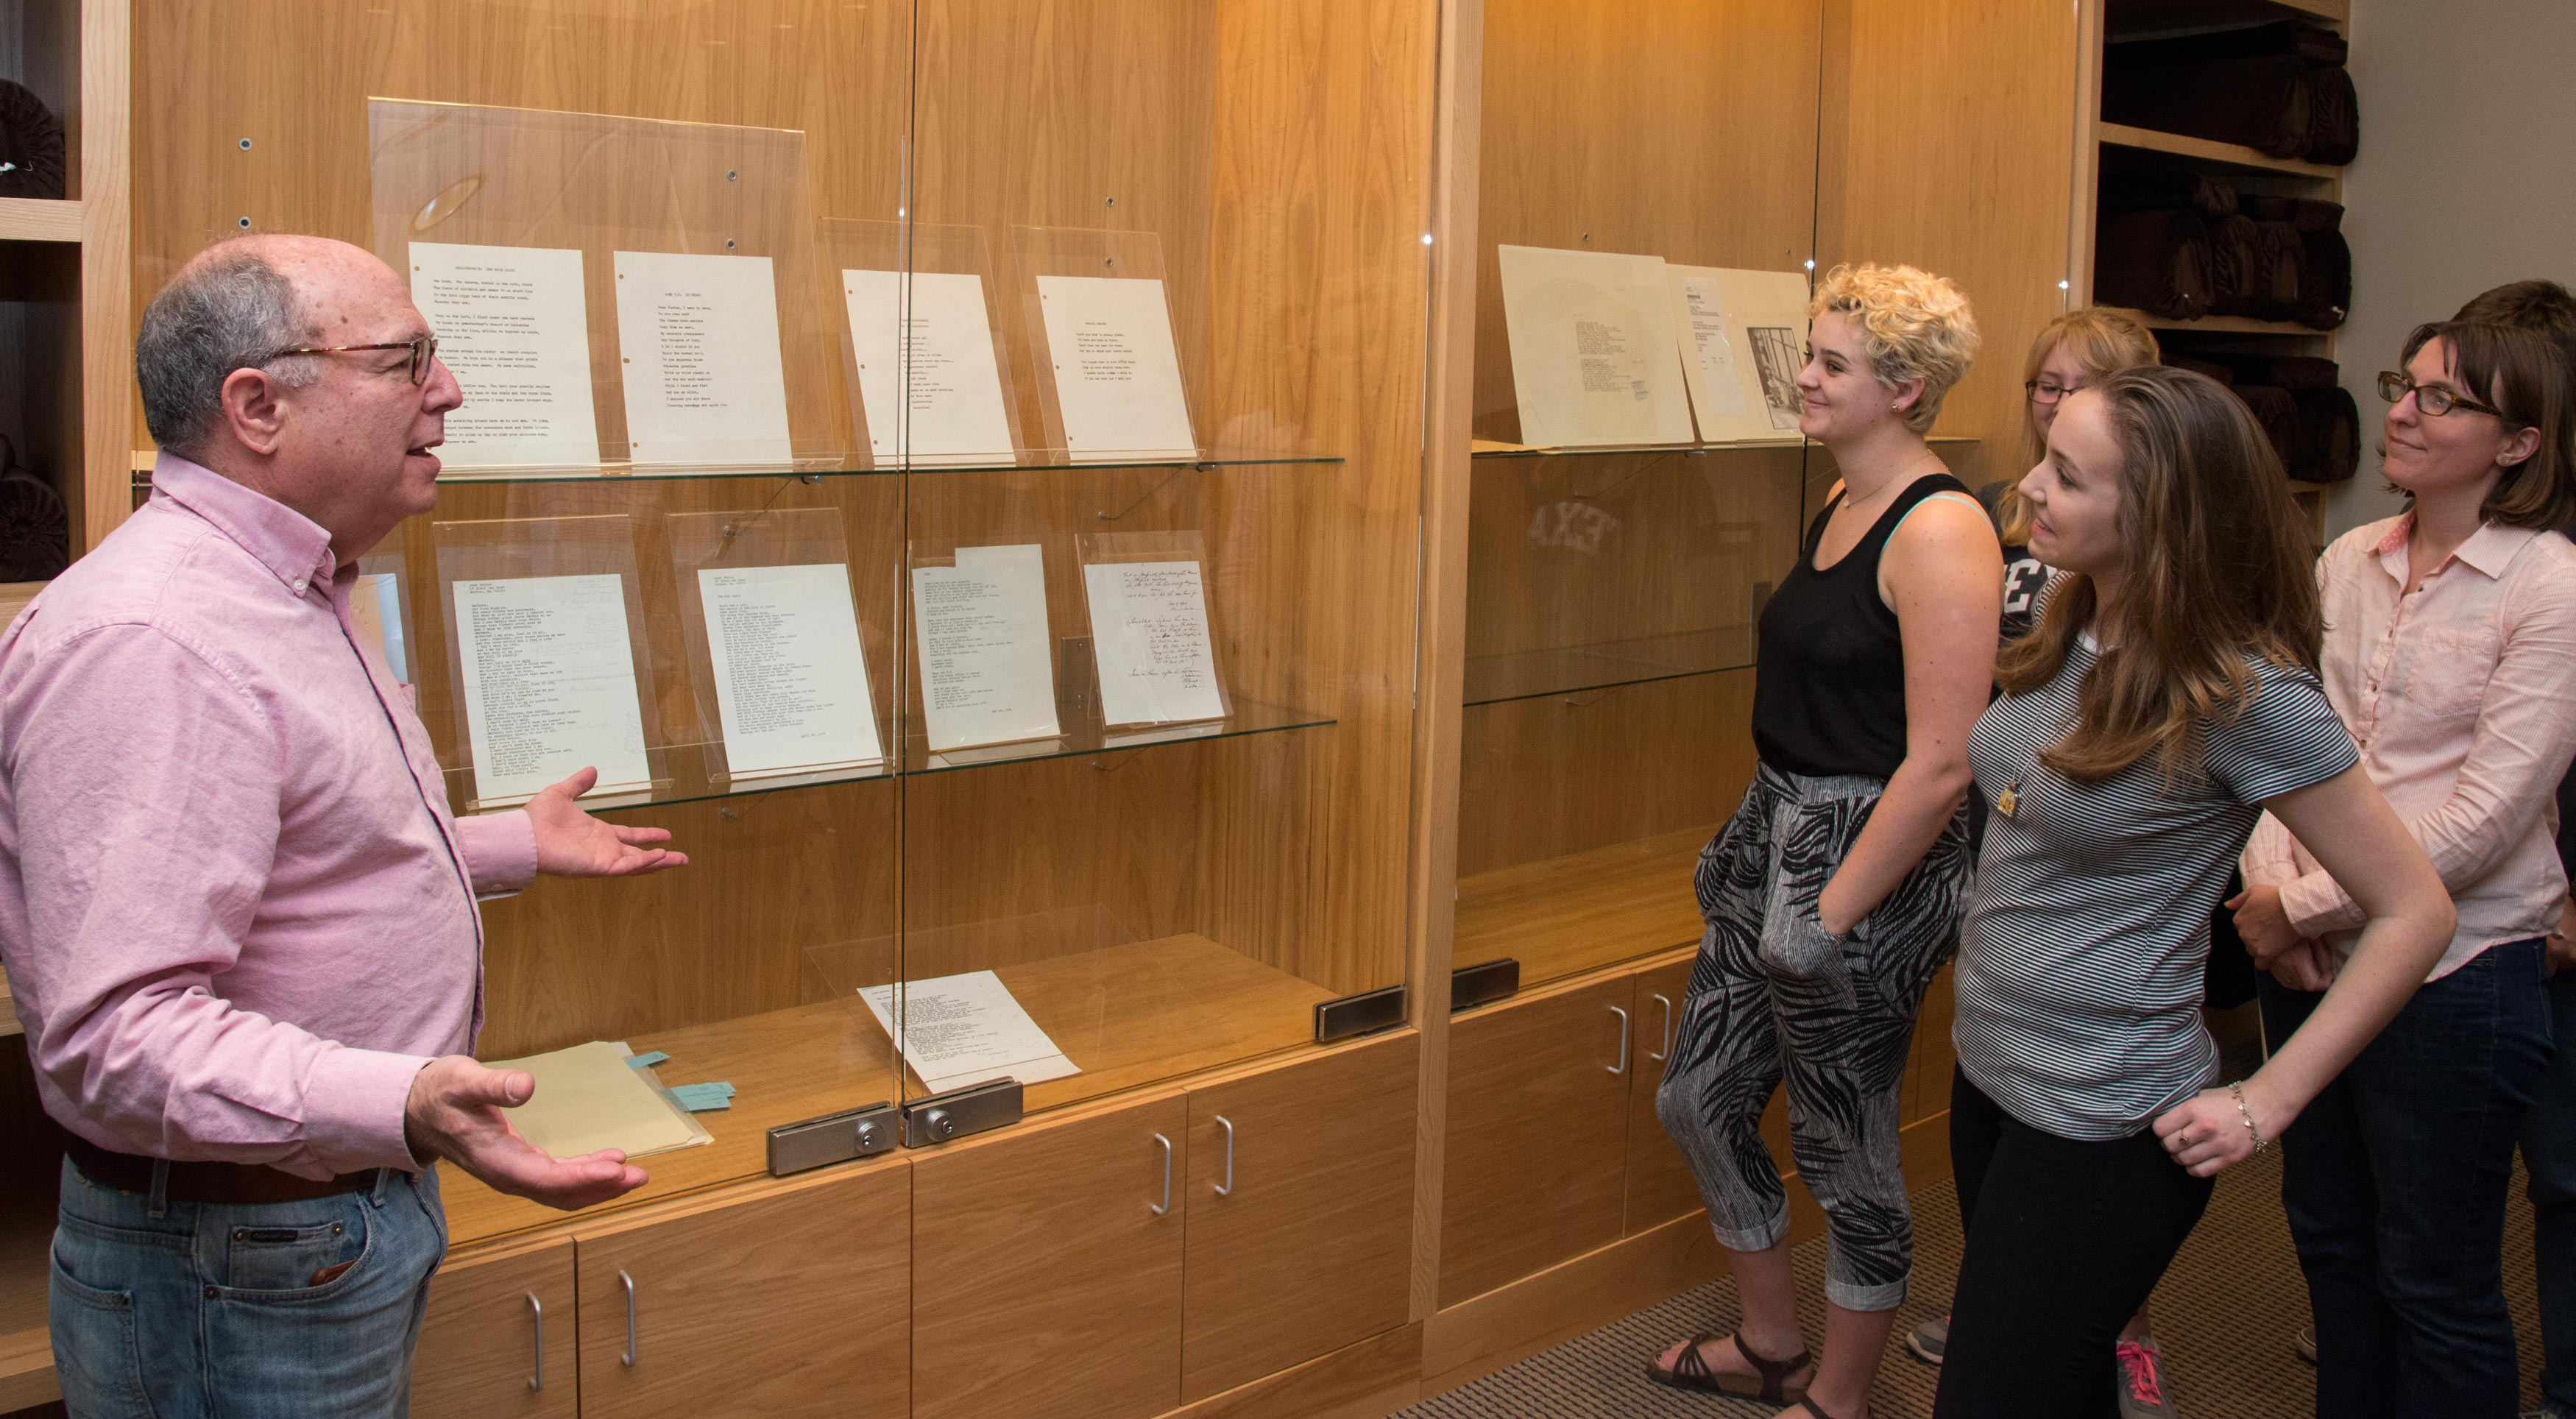 Students observe Ransom Center materials under the guidance of Dr. Robert Abzug.